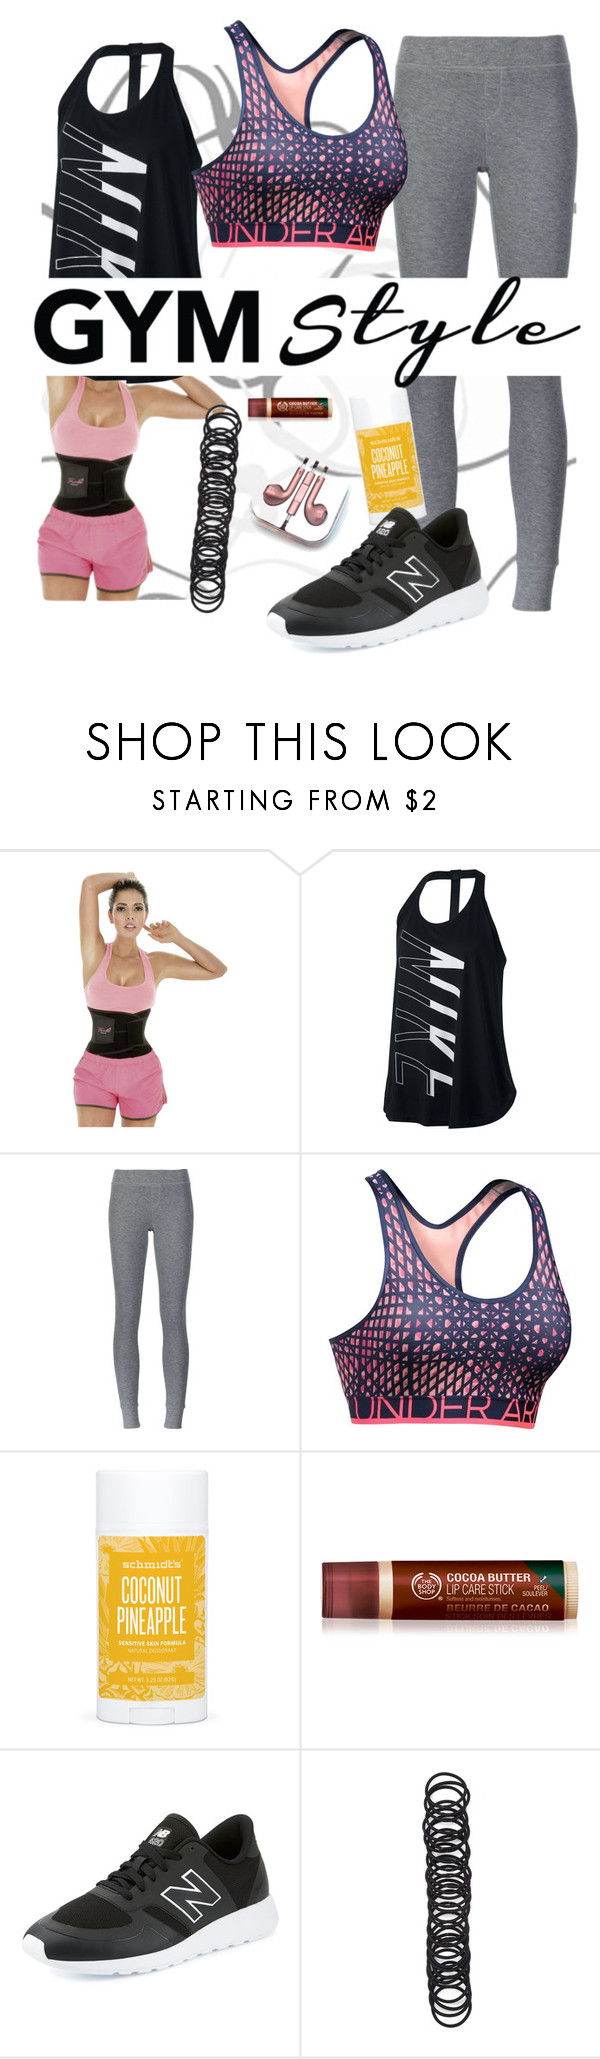 """Memories Lie"" by chelsofly on Polyvore featuring NIKE, ATM by Anthony Thomas Melillo, Under Armour, Schmidt's, New Balance, Forever 21, PhunkeeTree, gym and gymessentials"